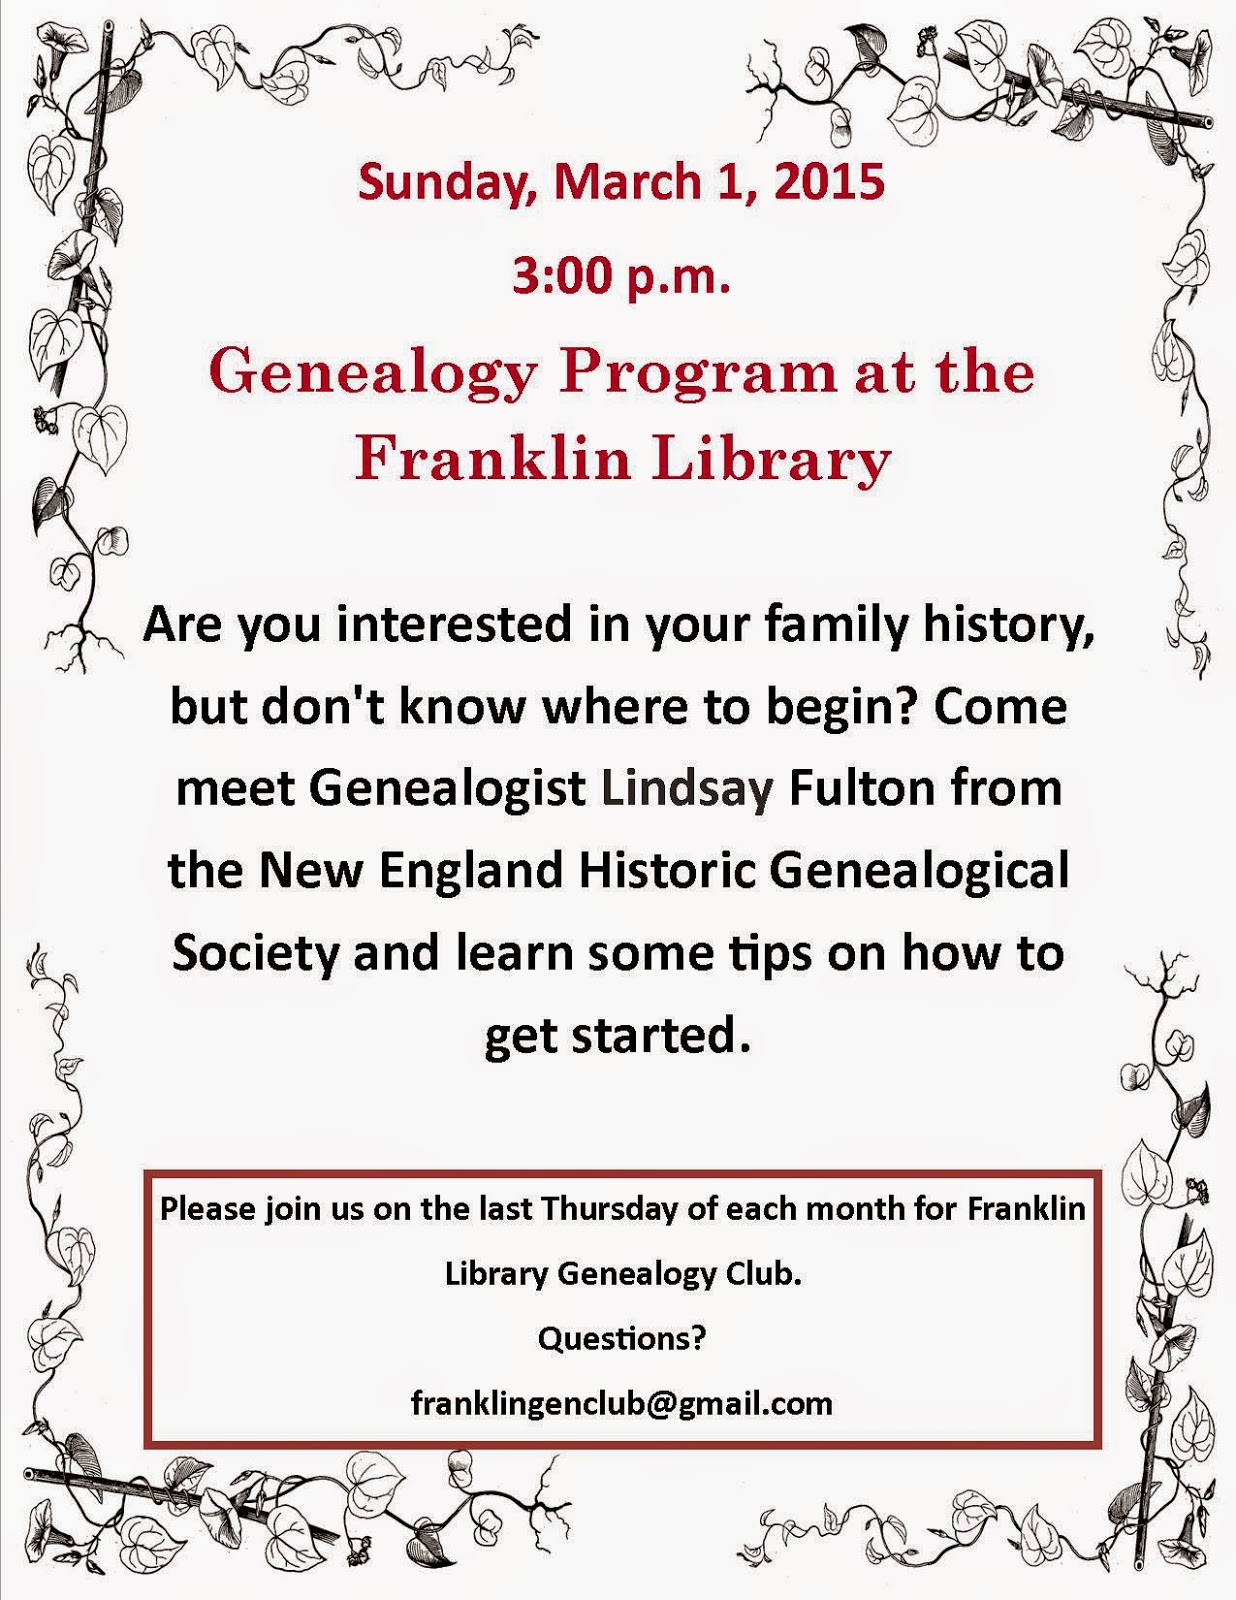 getting started in geneology - Mar 1